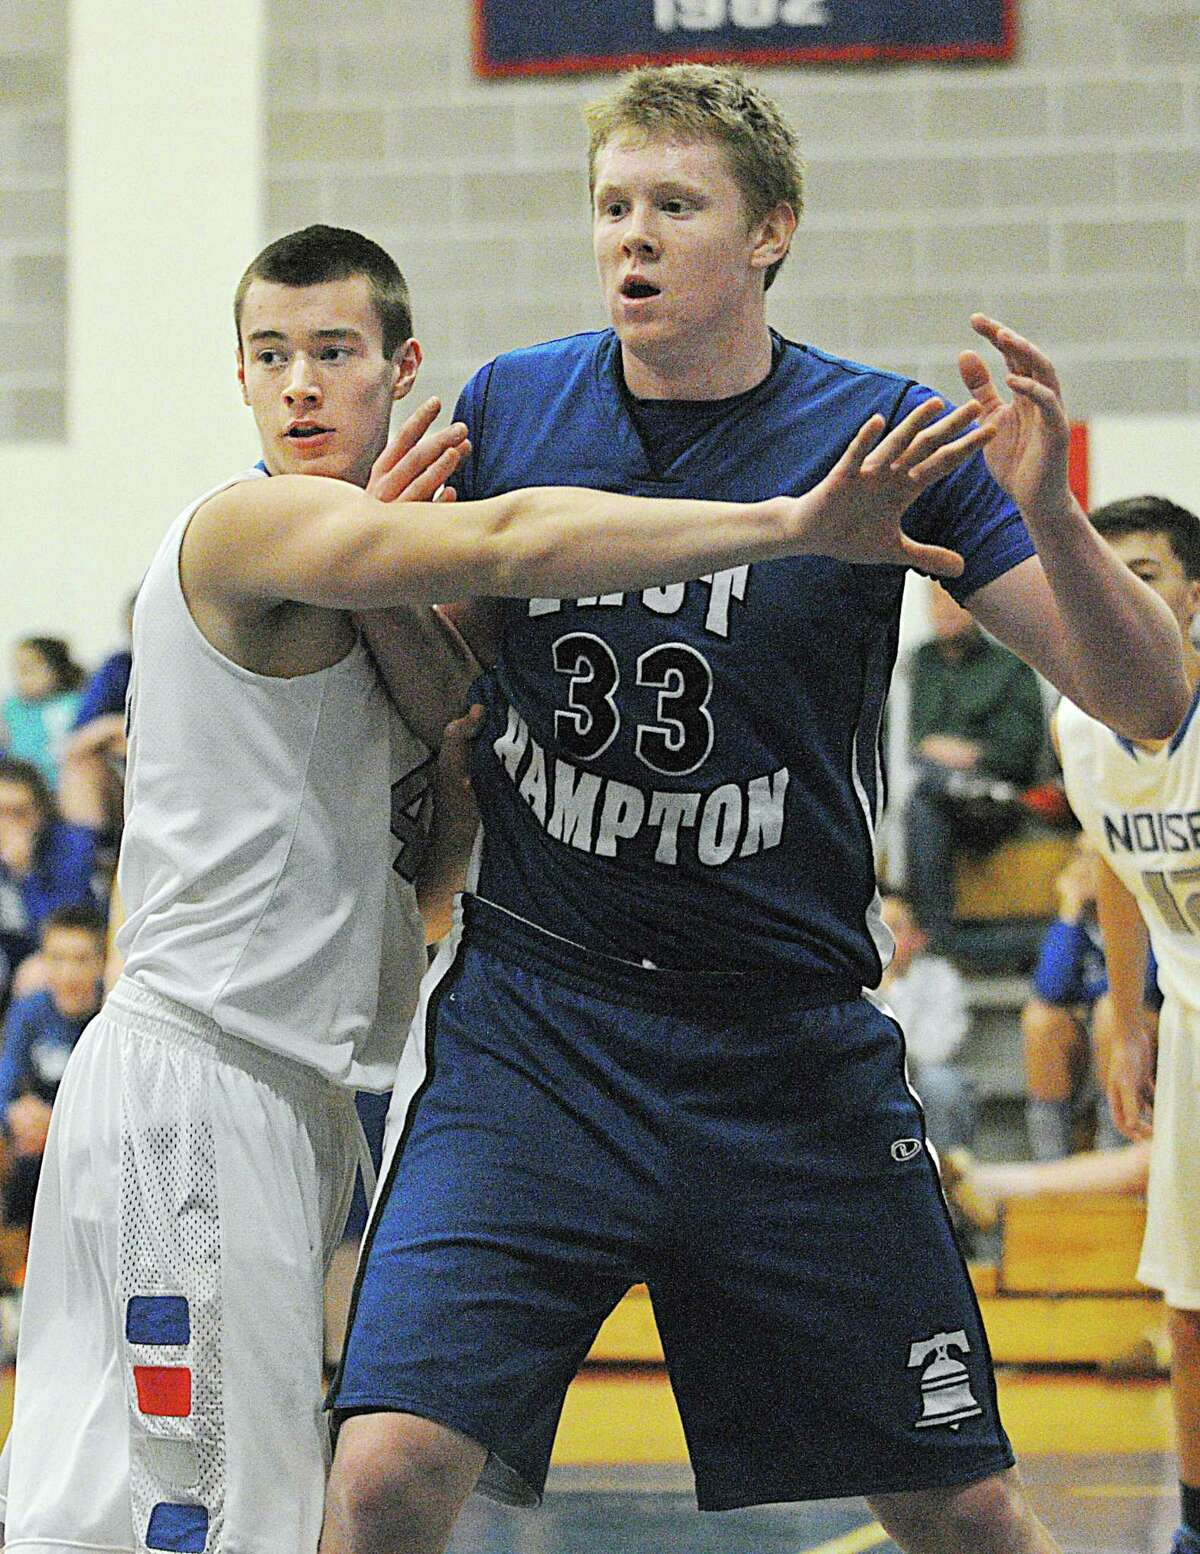 """East Hampton 6'5"""" senior forward Colin Parks takes position in the paint as Hale-Ray senior forward Brendon Fanslau defends. Parks led the Bellringers with 17 points in the 67-57 win over the Noises Tuesday evening."""